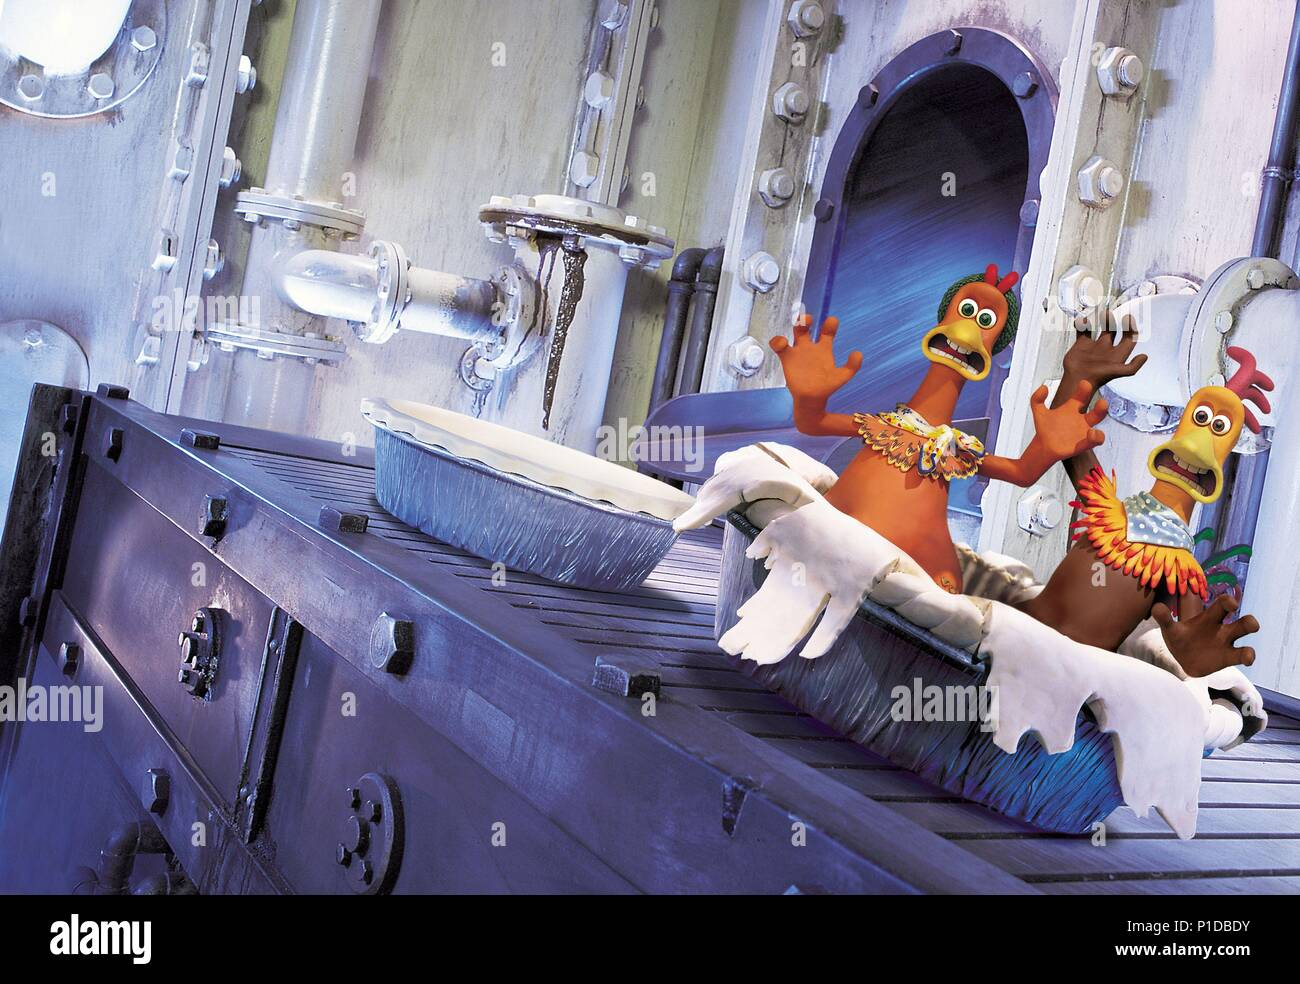 Original Film Title Chicken Run English Title Chicken Run Film Director Nick Park Peter Lord Year 2000 Credit Dreamworks Album Stock Photo Alamy